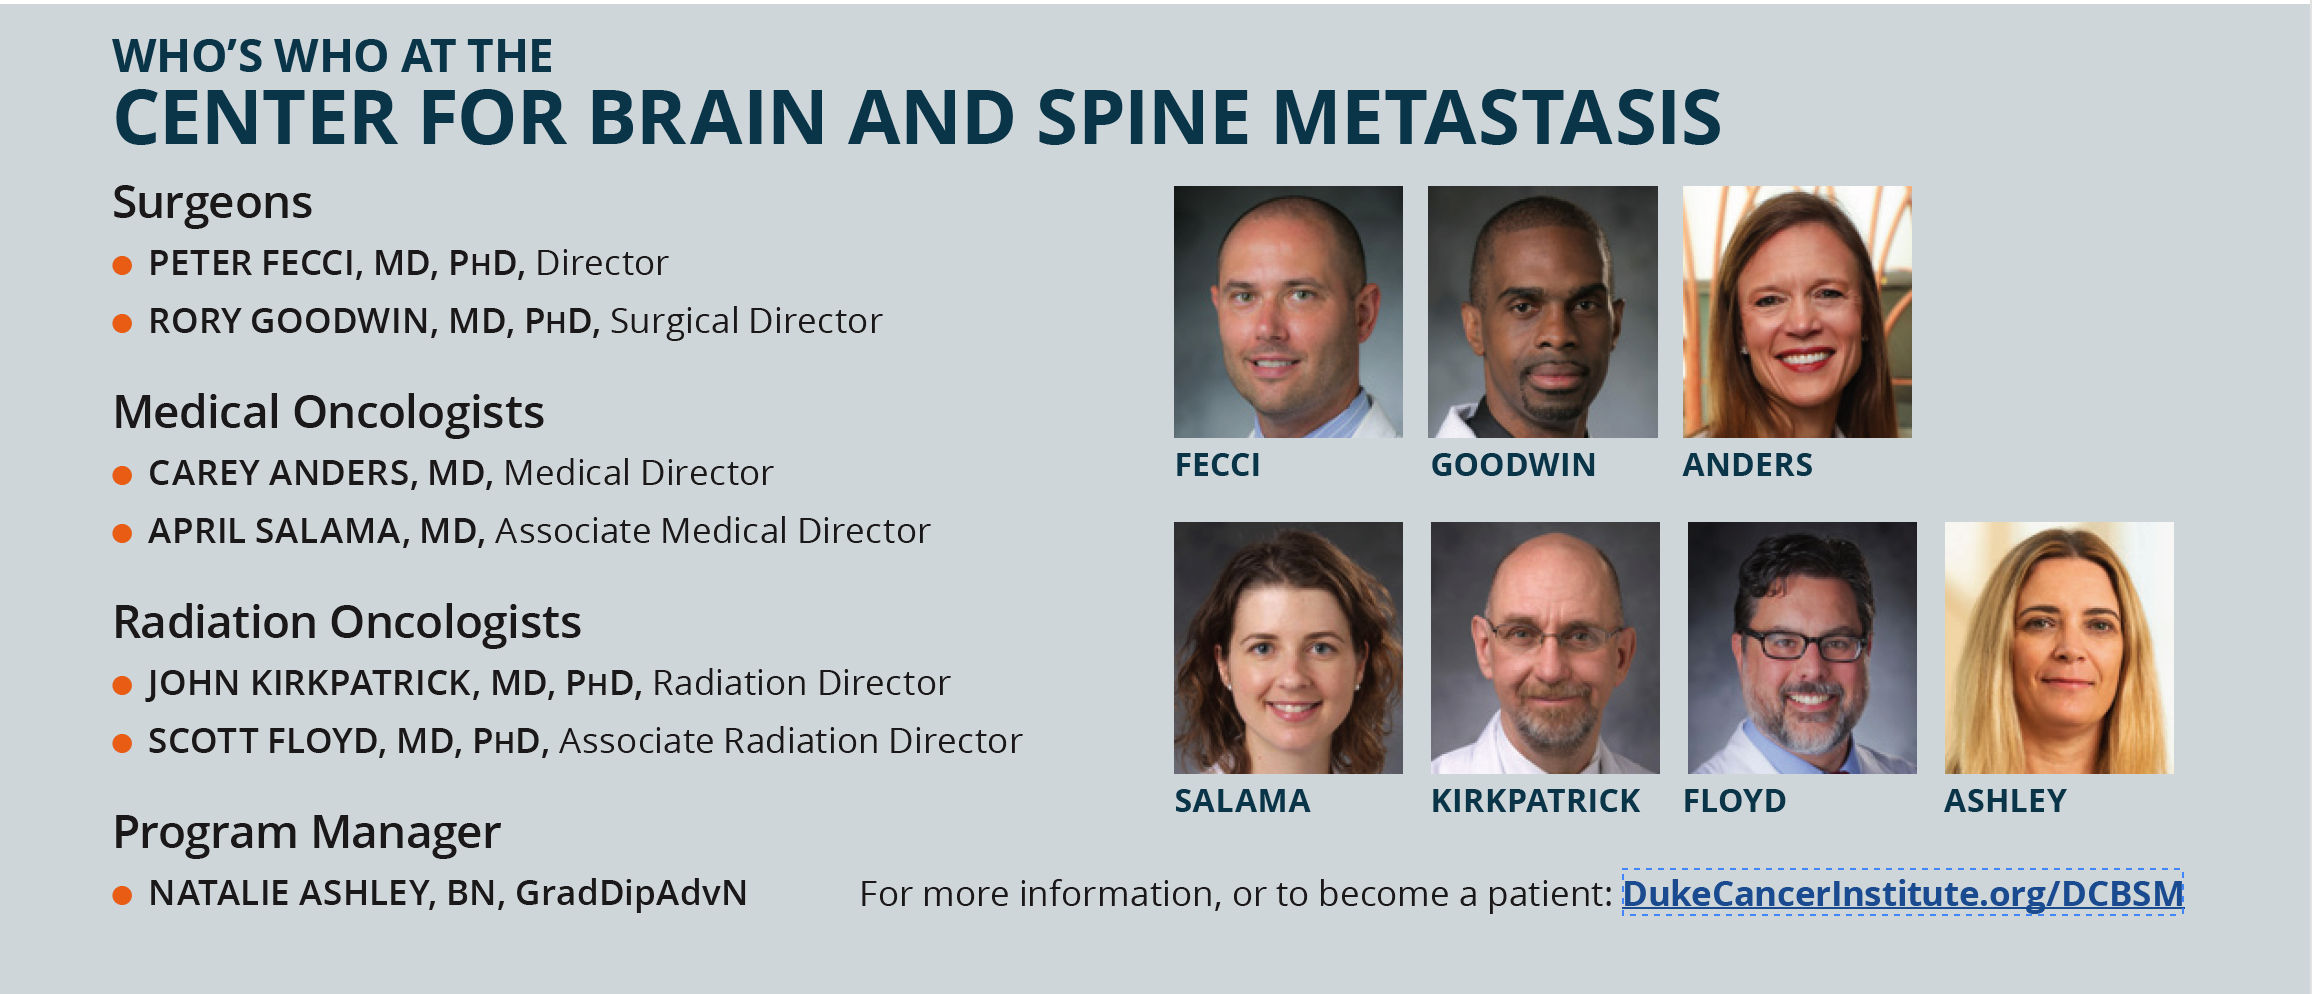 Who's Who at the Center for Brain and Spine Metastasis